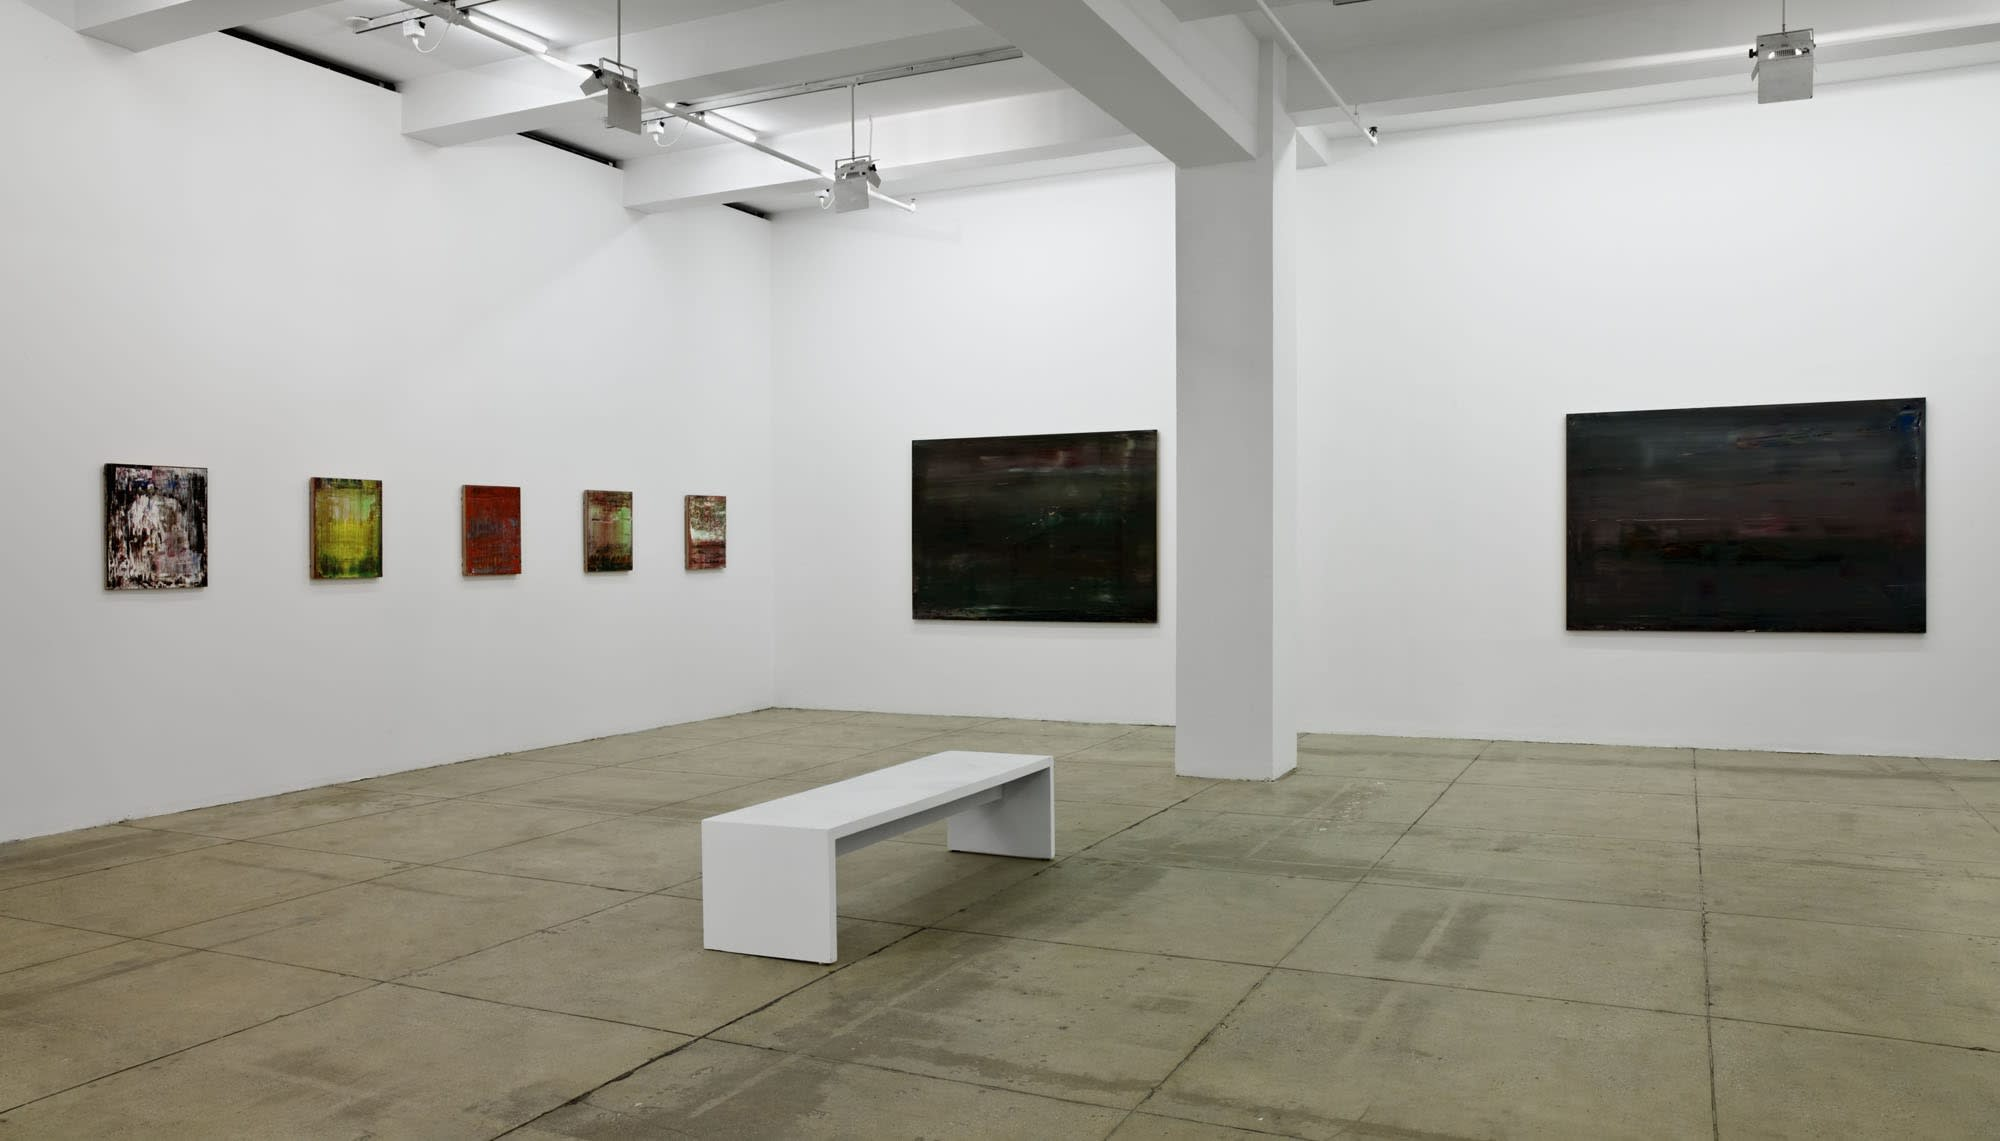 On the left wall are 5 small, colorful, abstract paintings in a row. On the right wall are two large, black abstract paintings. A white column and bench sit in the center of the room.